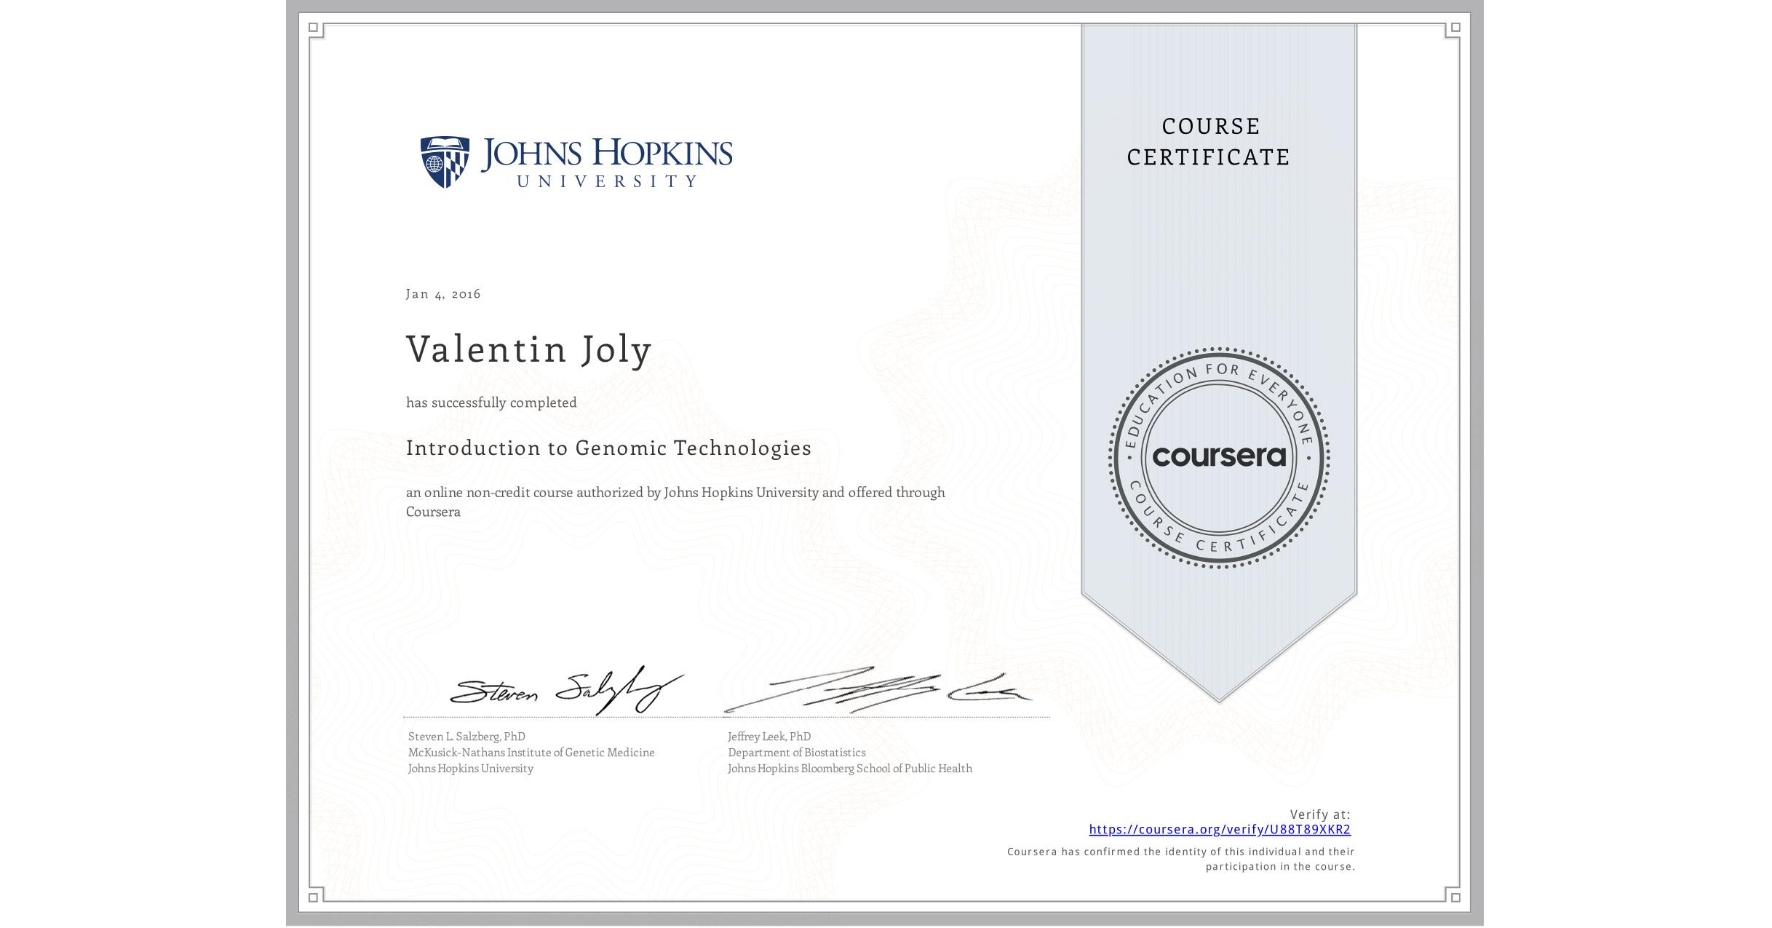 View certificate for Valentin Joly, Introduction to Genomic Technologies, an online non-credit course authorized by Johns Hopkins University and offered through Coursera